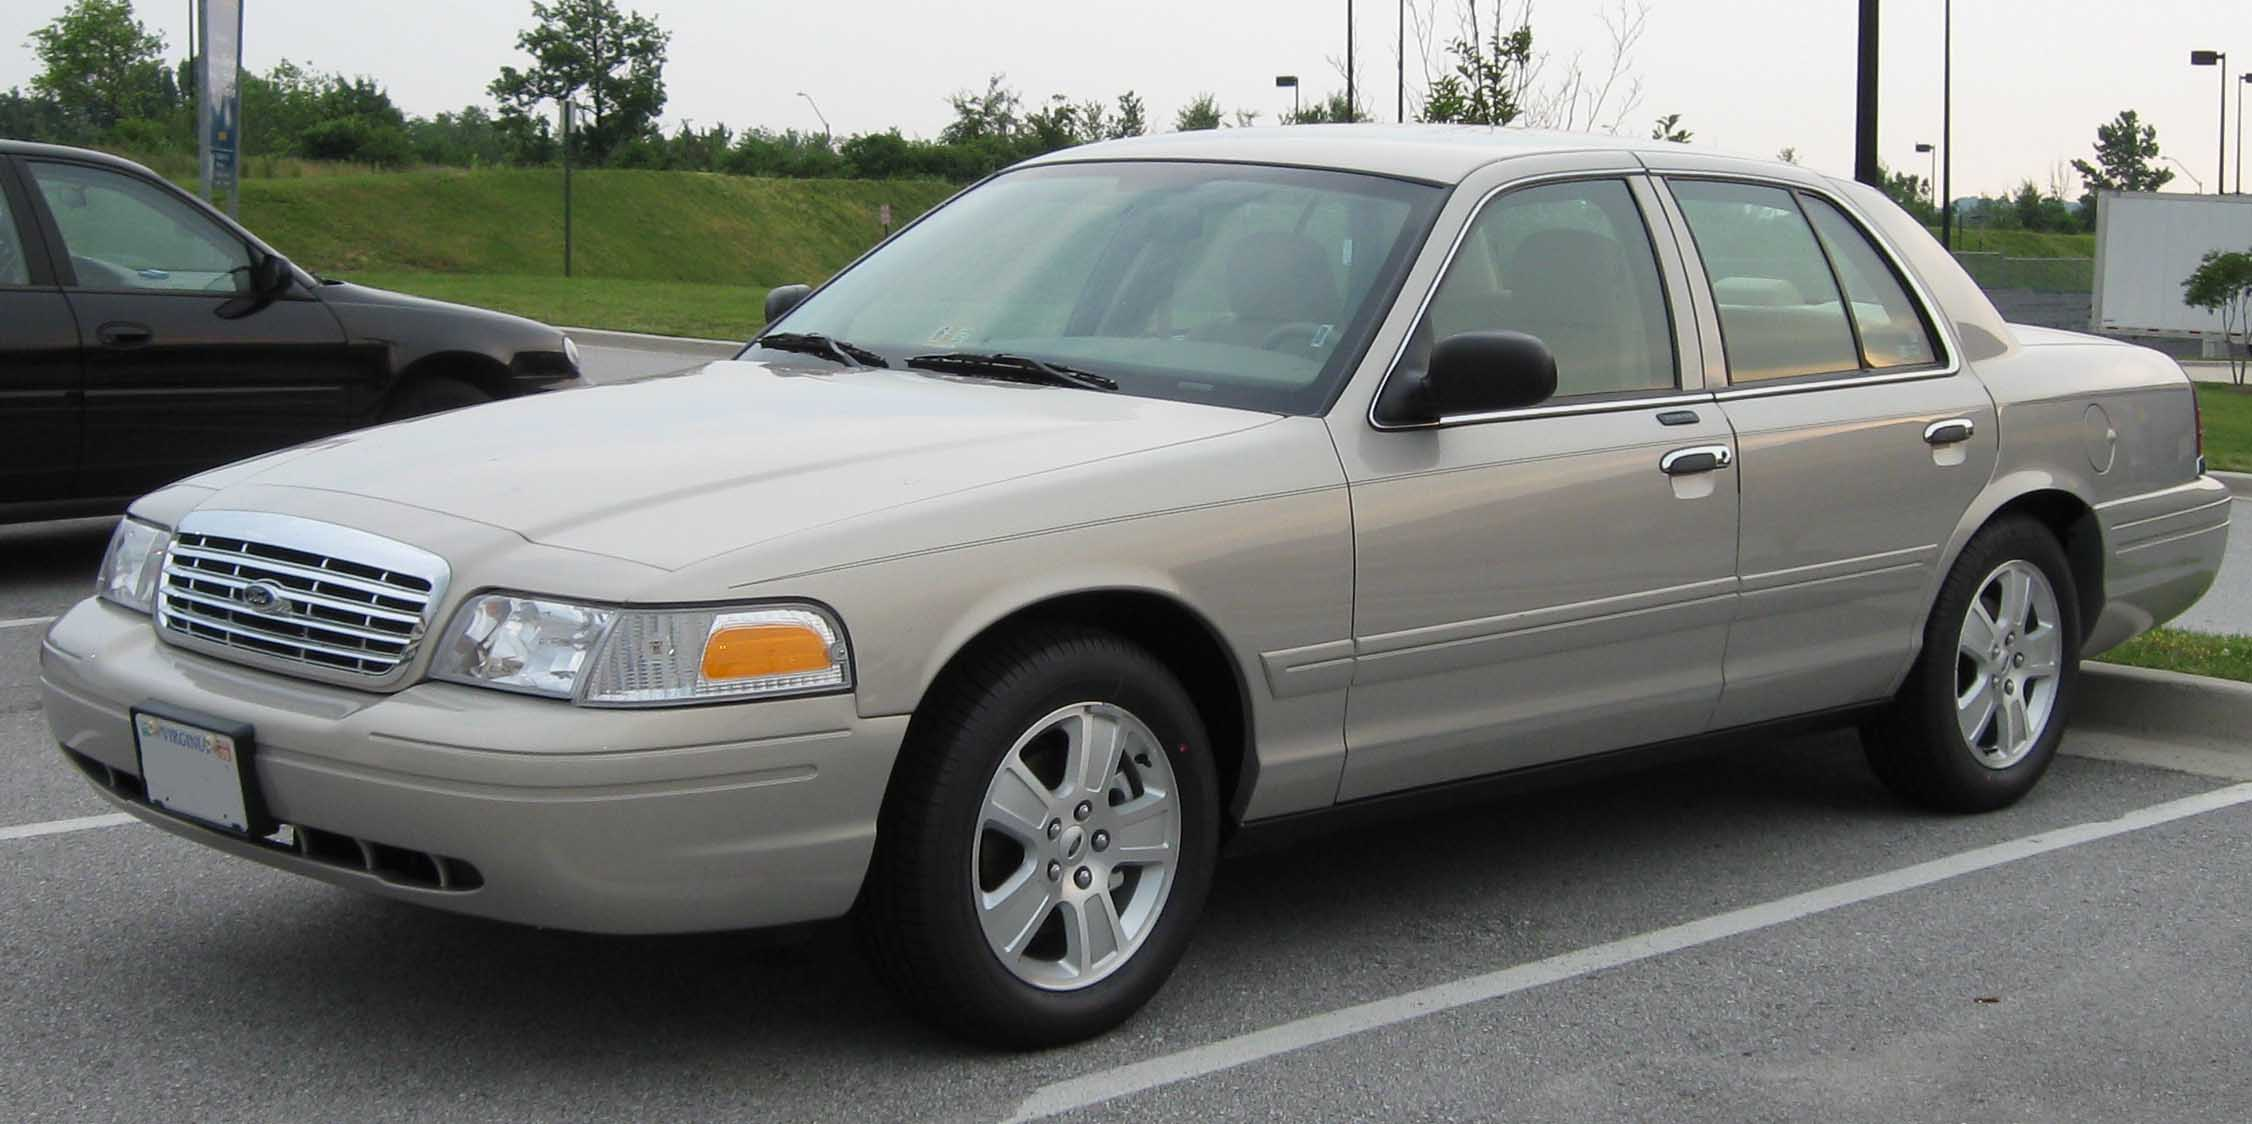 2002 Ford Crown Victoria #6